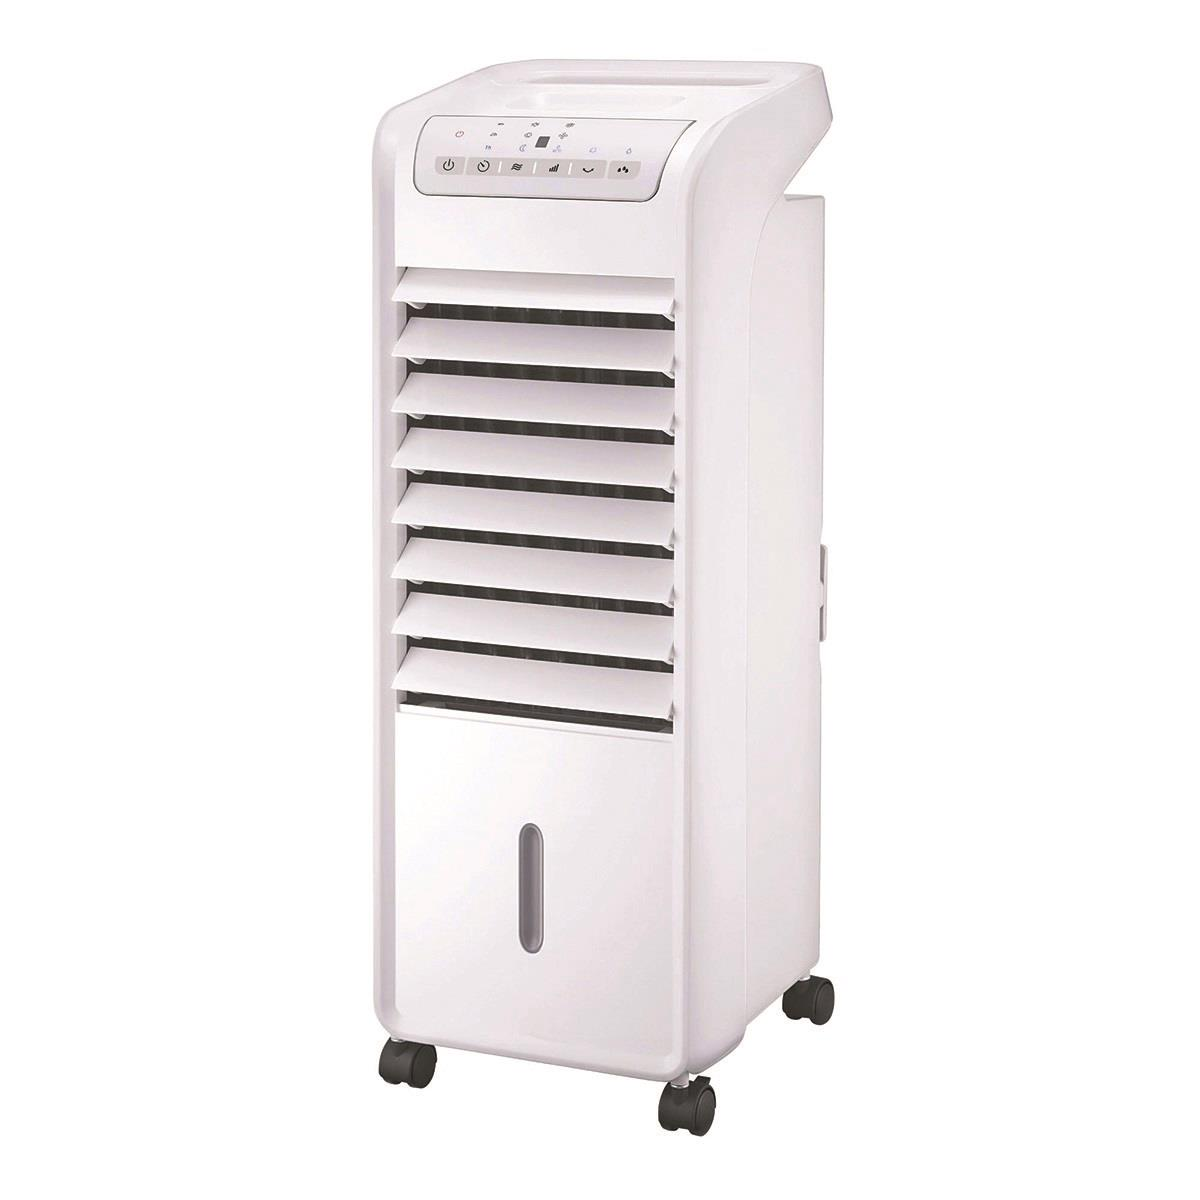 Air Cooler 55W Oscillation Function Timer Remote Control White